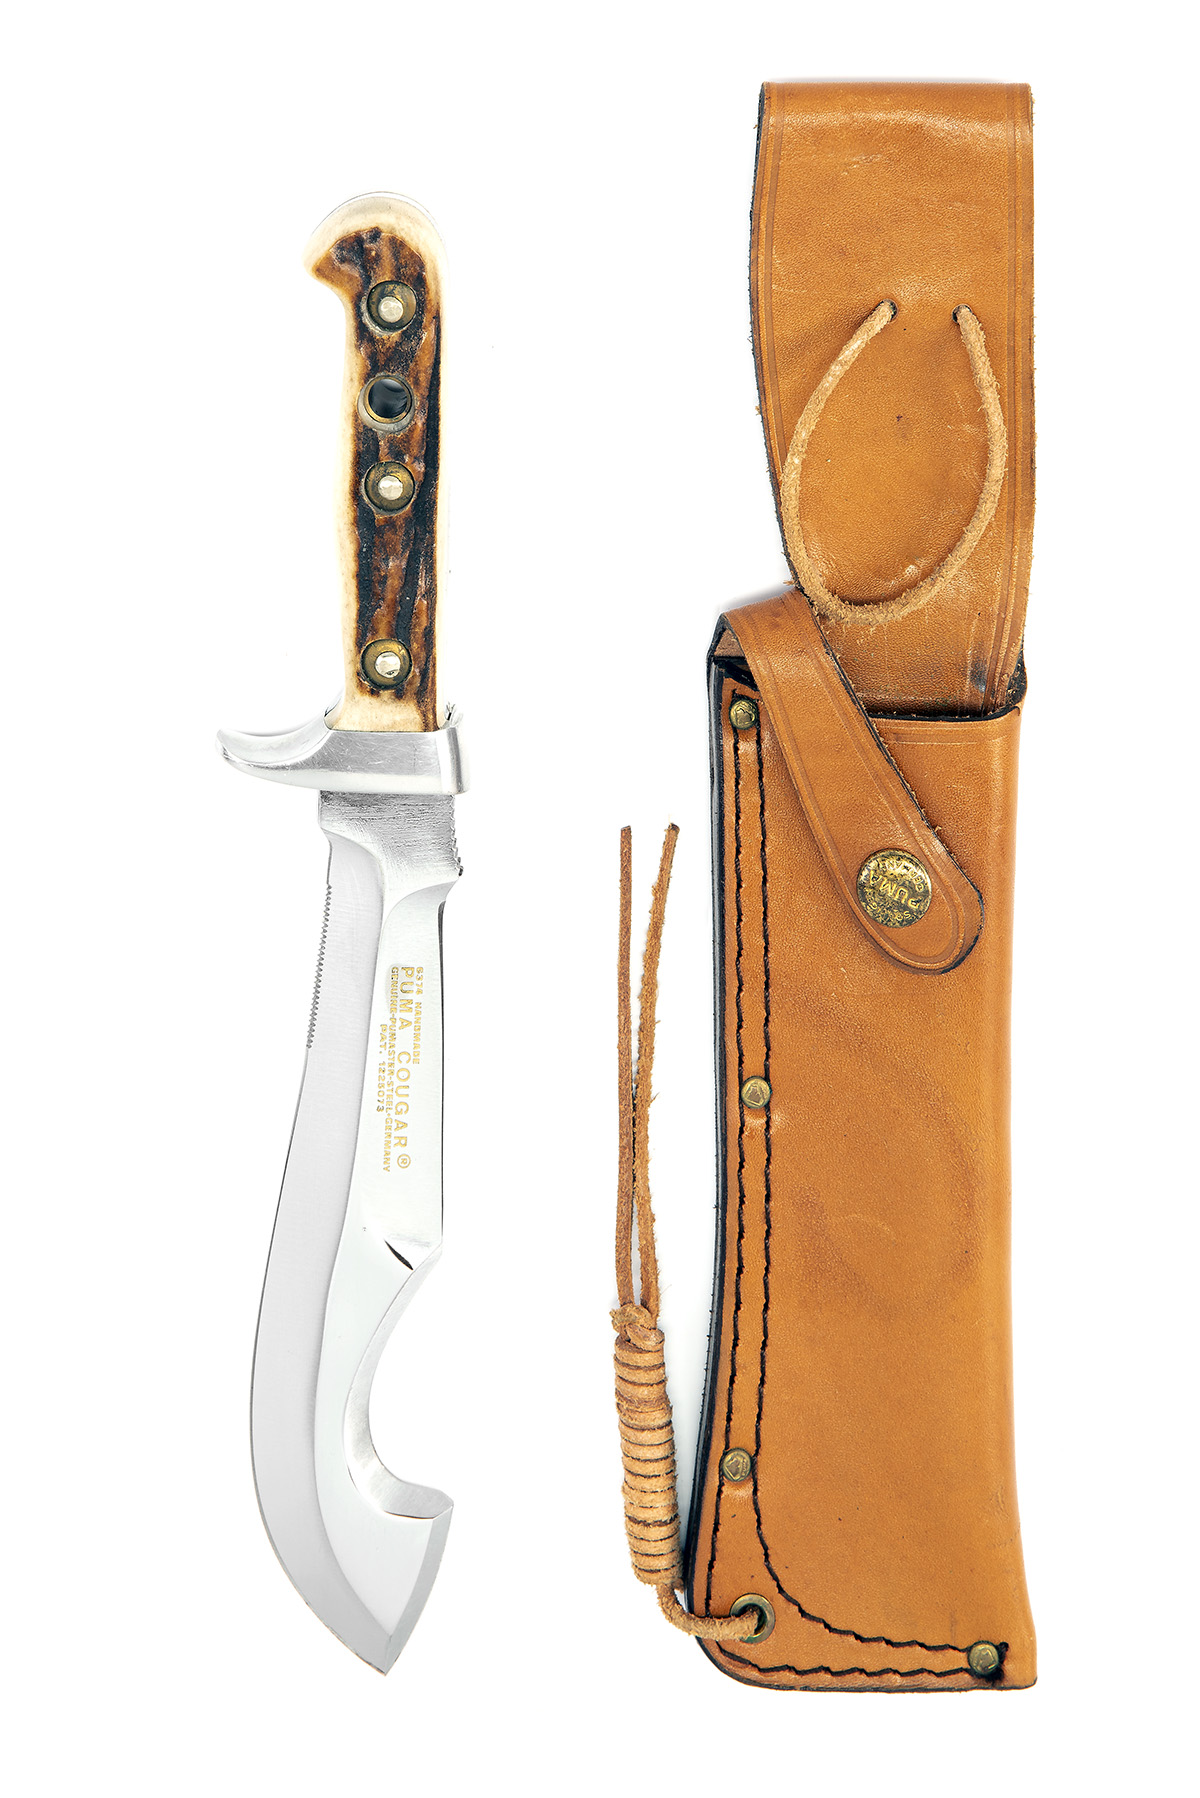 PUMA, GERMANY A SCARCE CASED SPORTING-KNIFE, MODEL '6374 COUGAR', serial no. 83774, for 1977, the